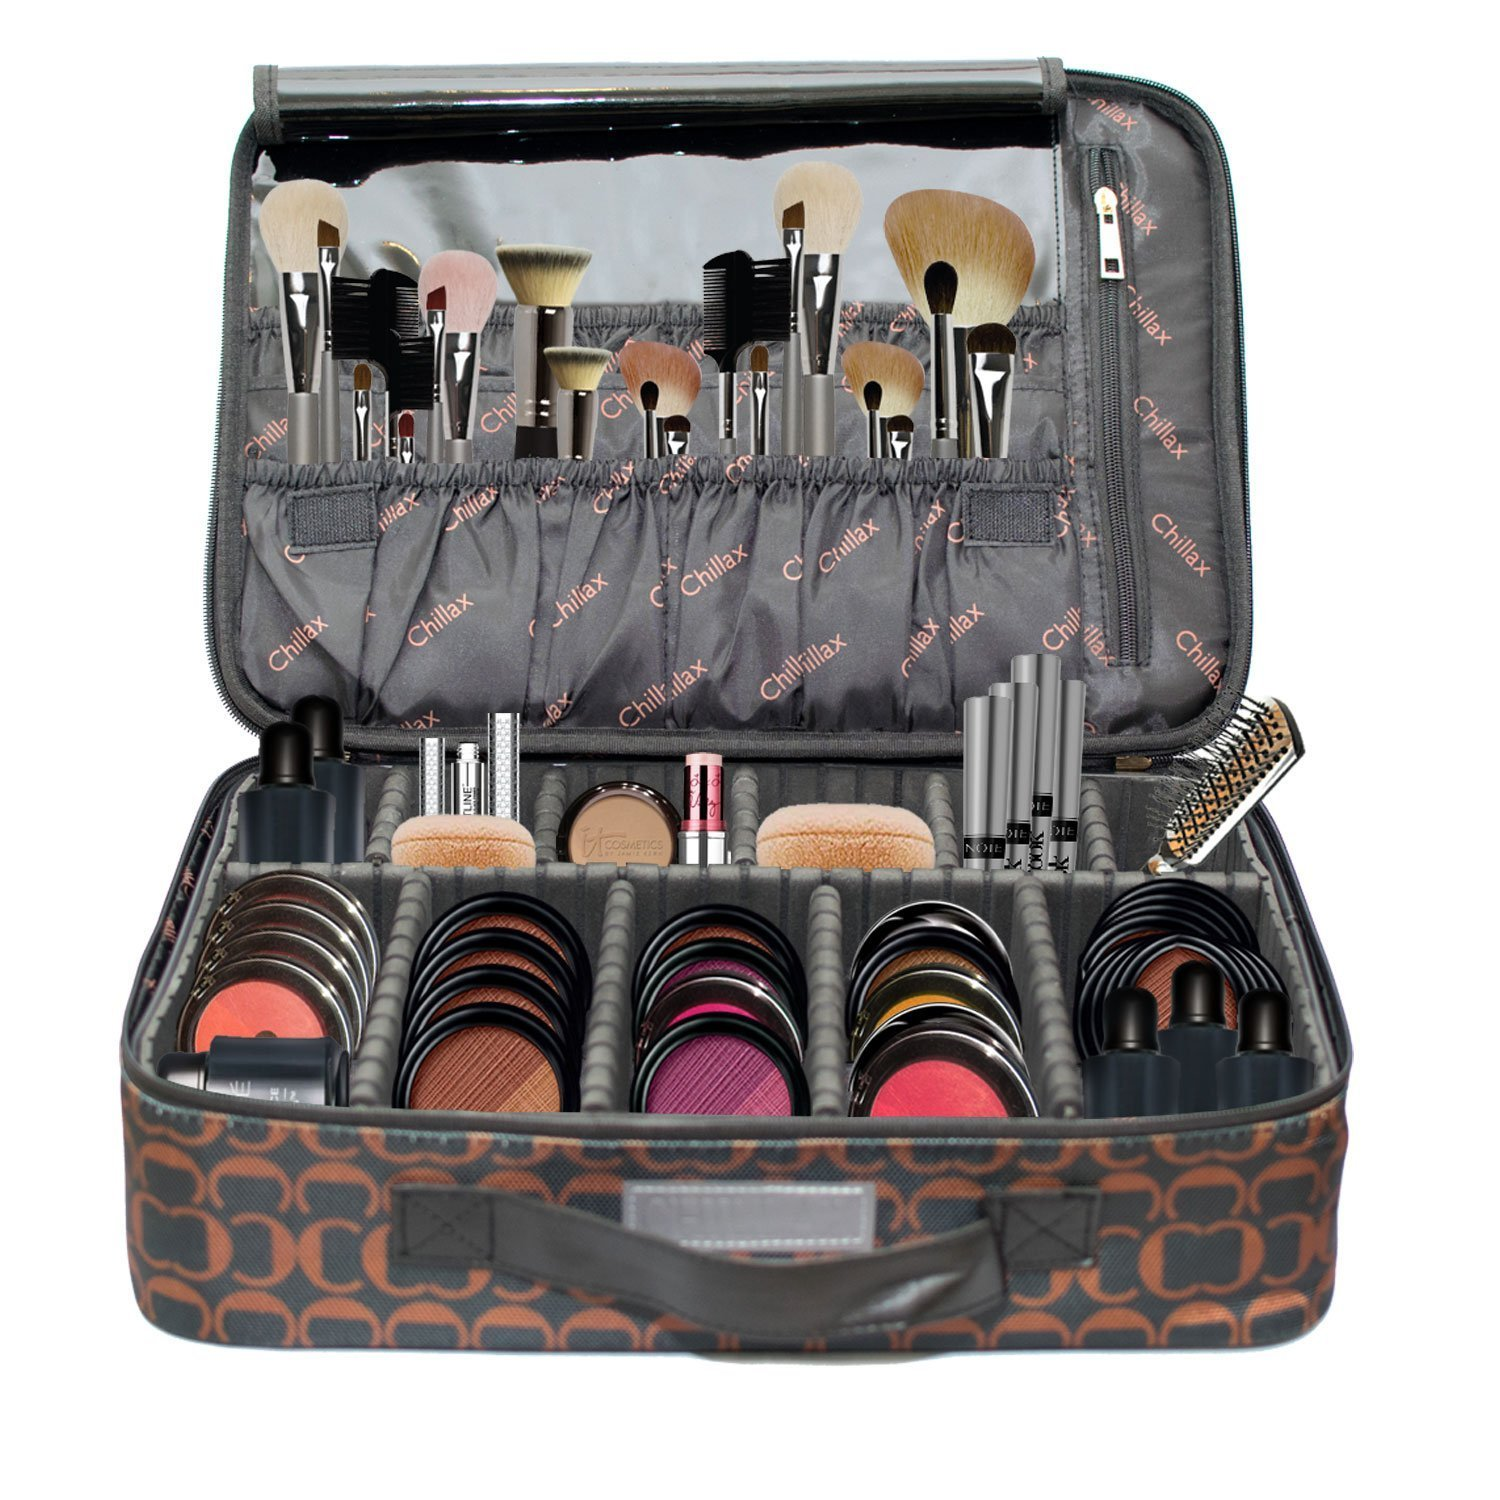 Makeup Organizer Bag Large Make Up Case with Brush Holder Compartments Professional Train By Chillax - Perfect Professional Storage Organizers kit for ...